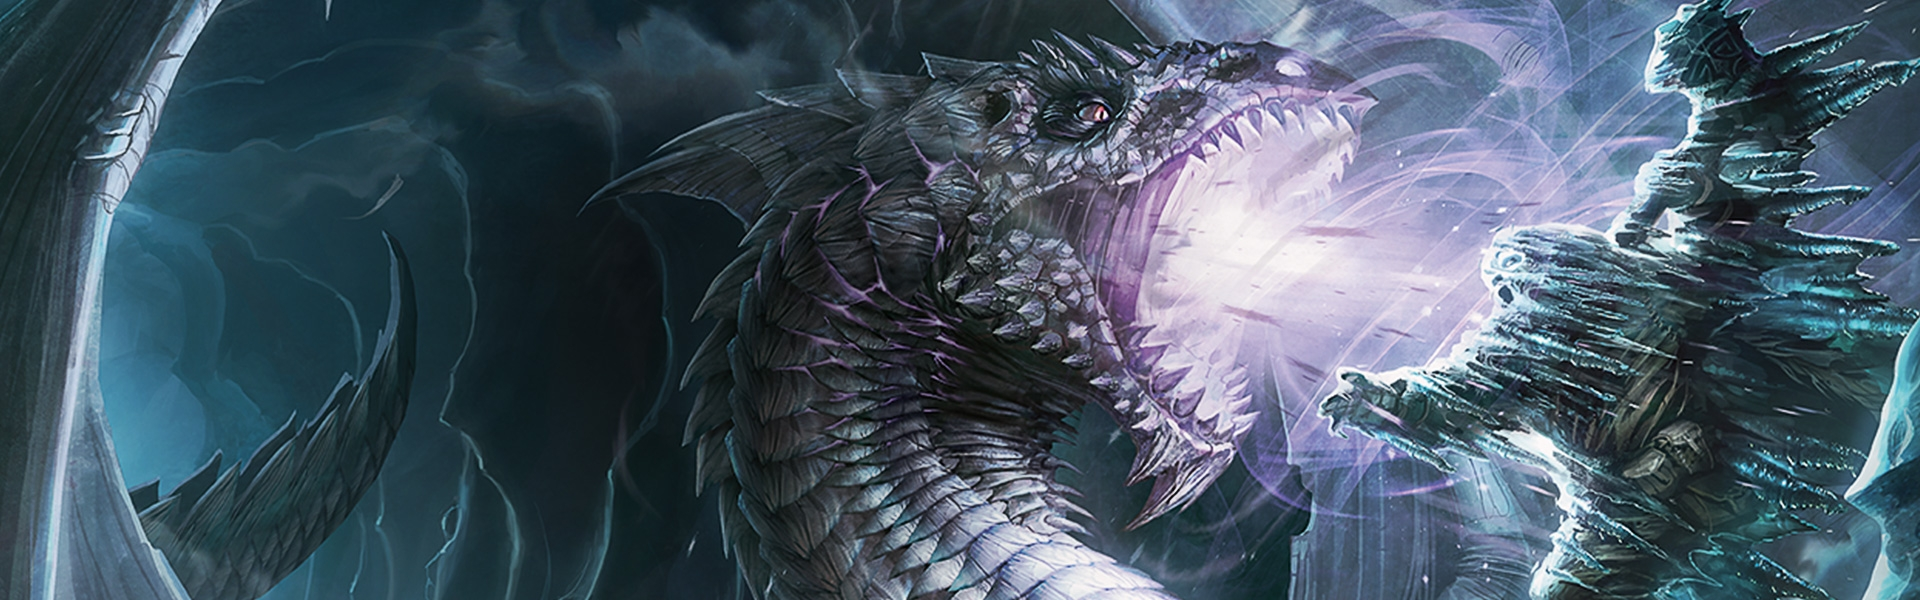 Hoard Of The Dragon Queen Dungeons Dragons